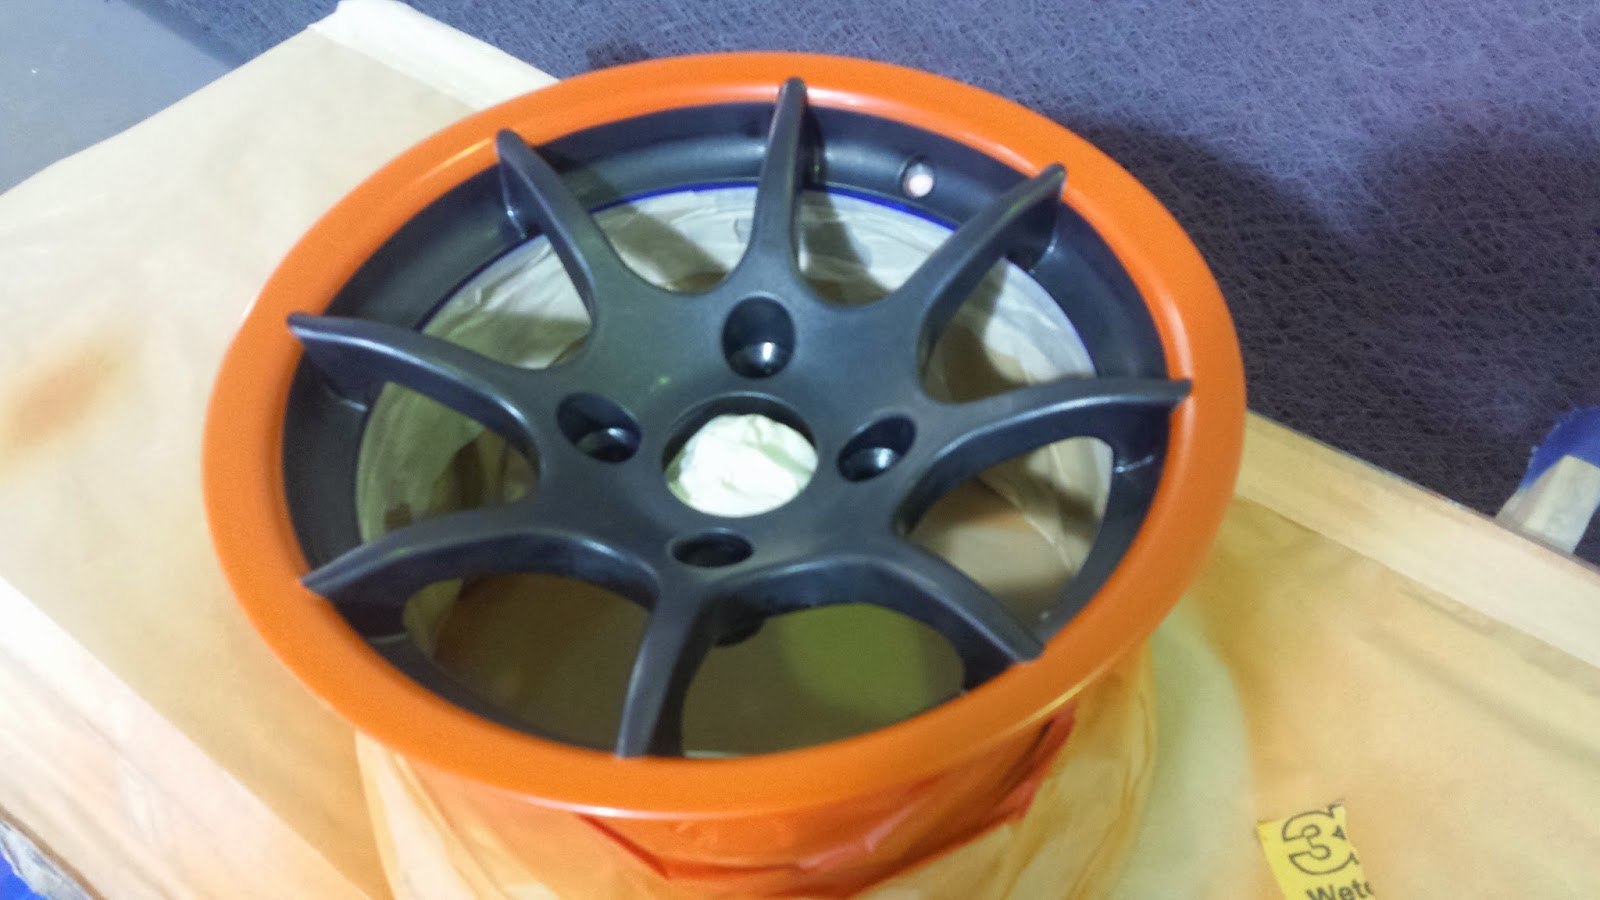 Wheel rim sprayed with RAL 2004